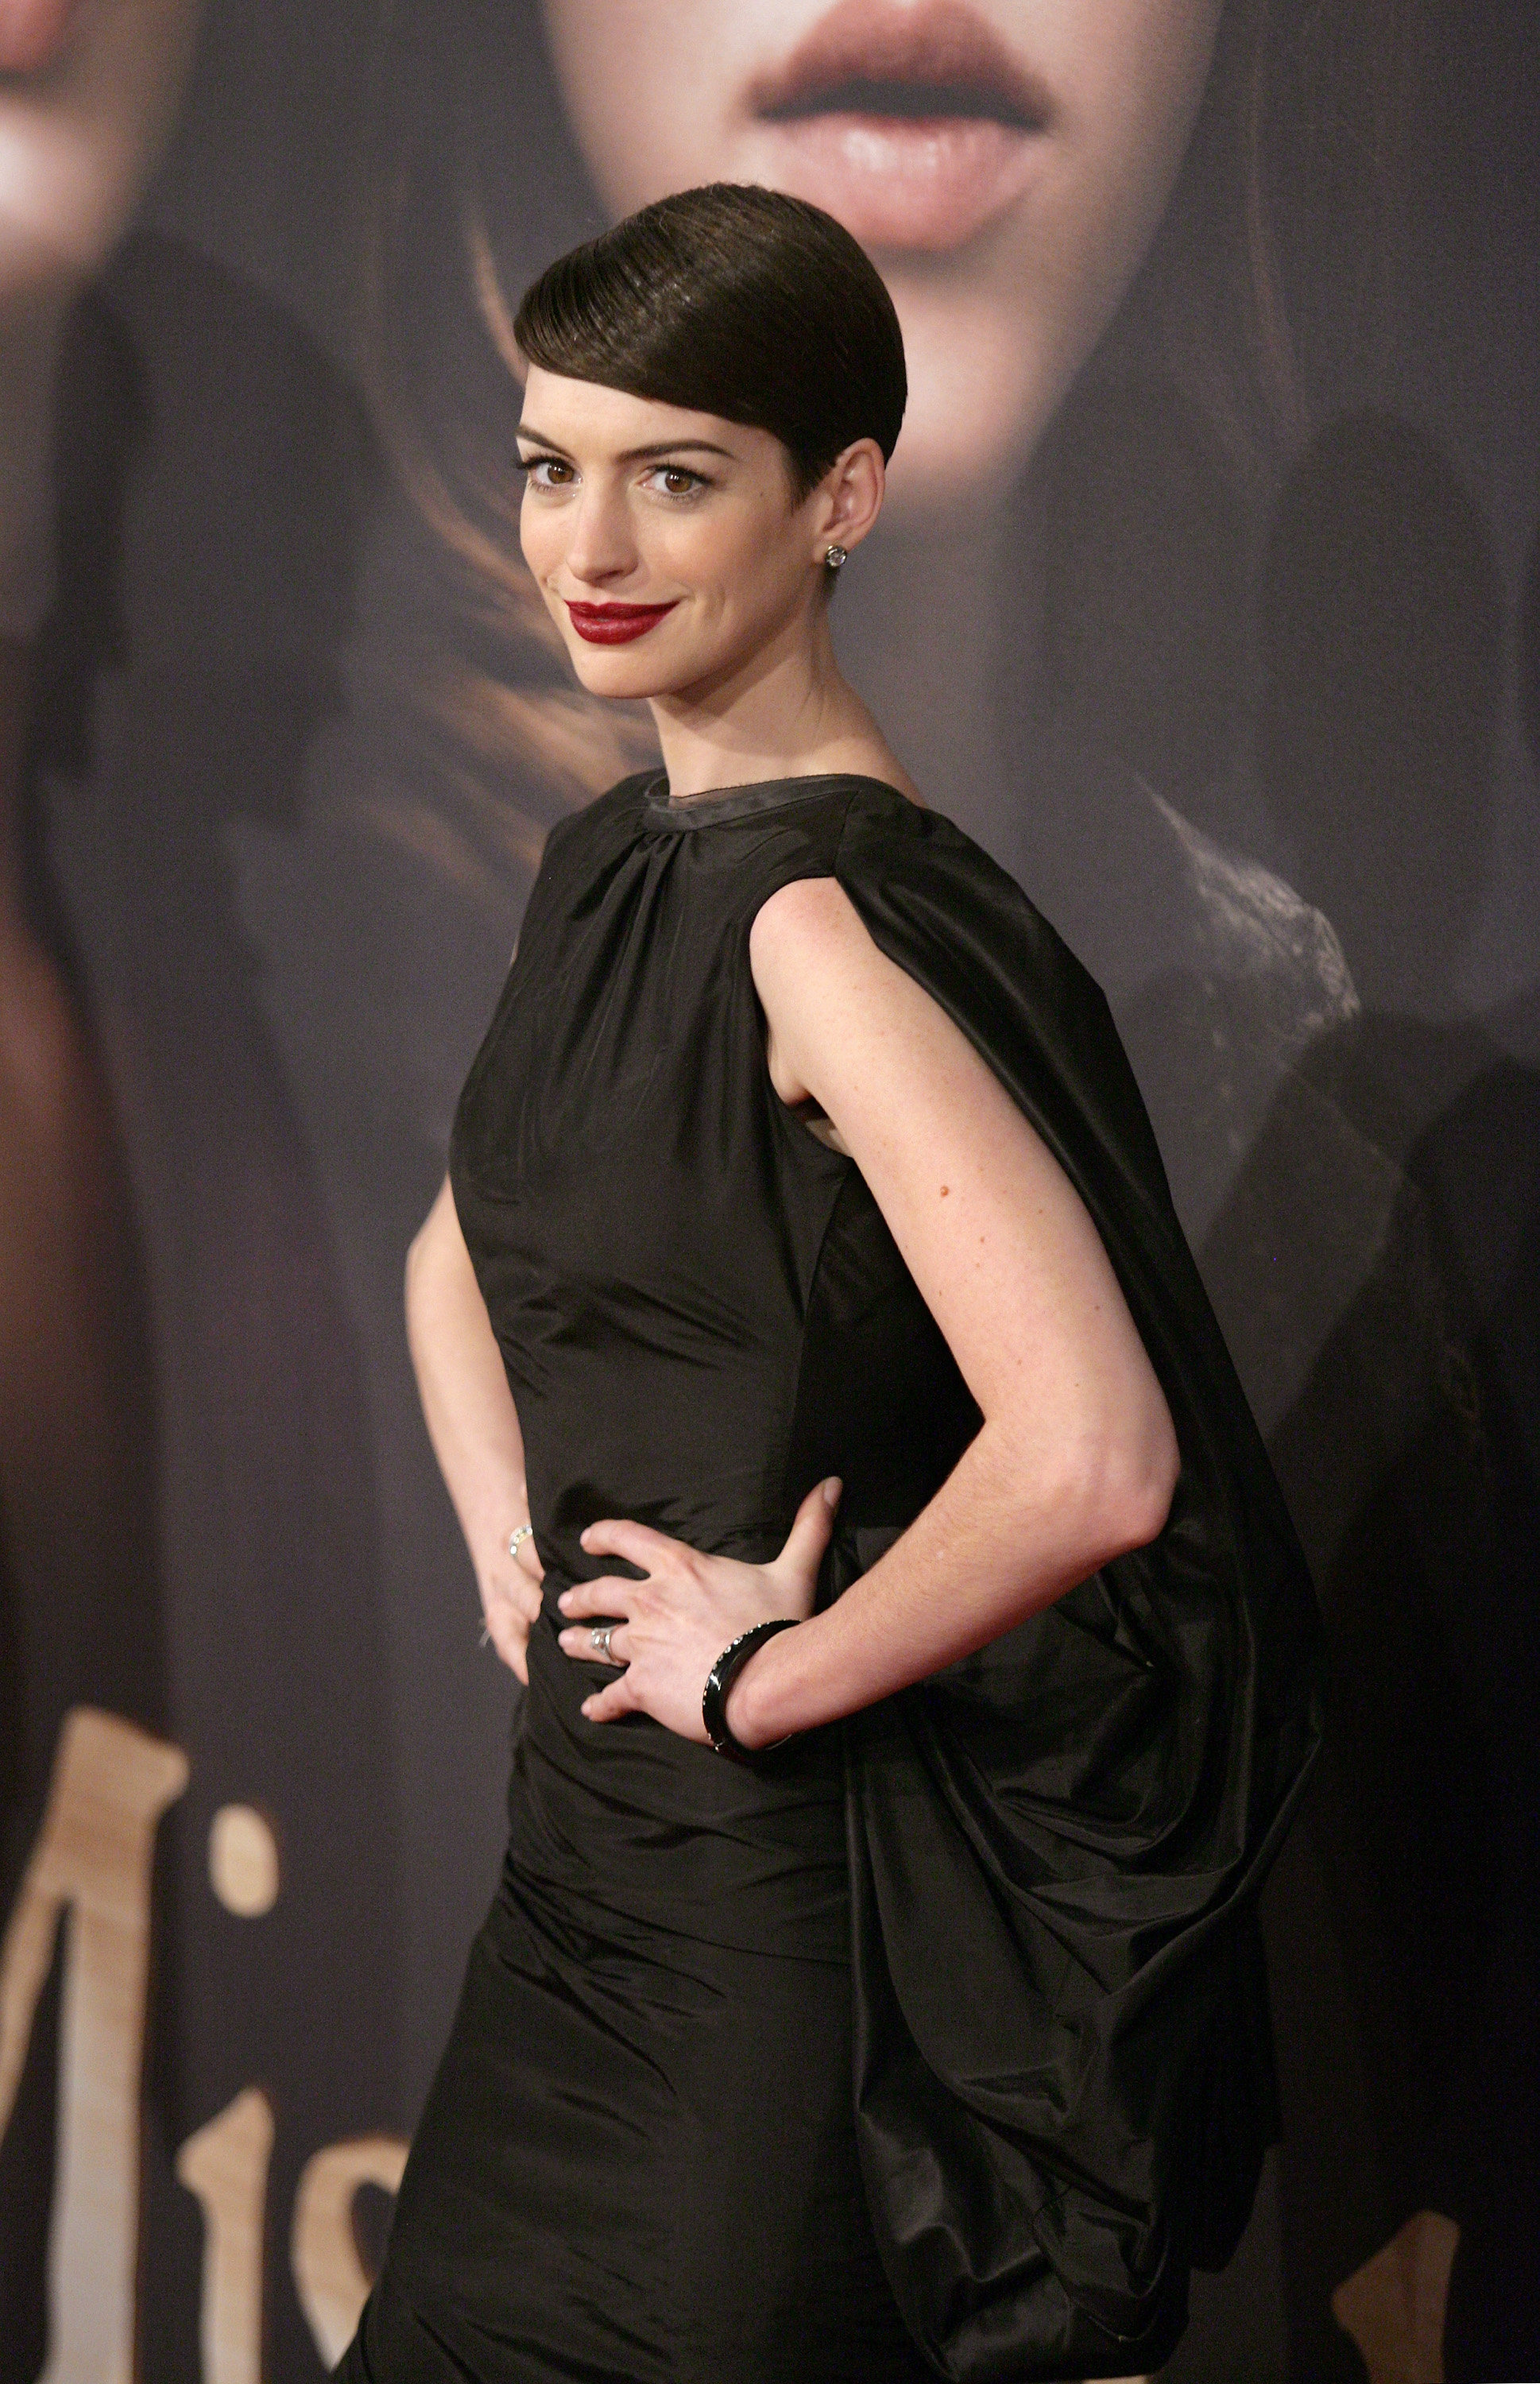 Anne Hathaway FOTO: Gallo Images / Getty Images